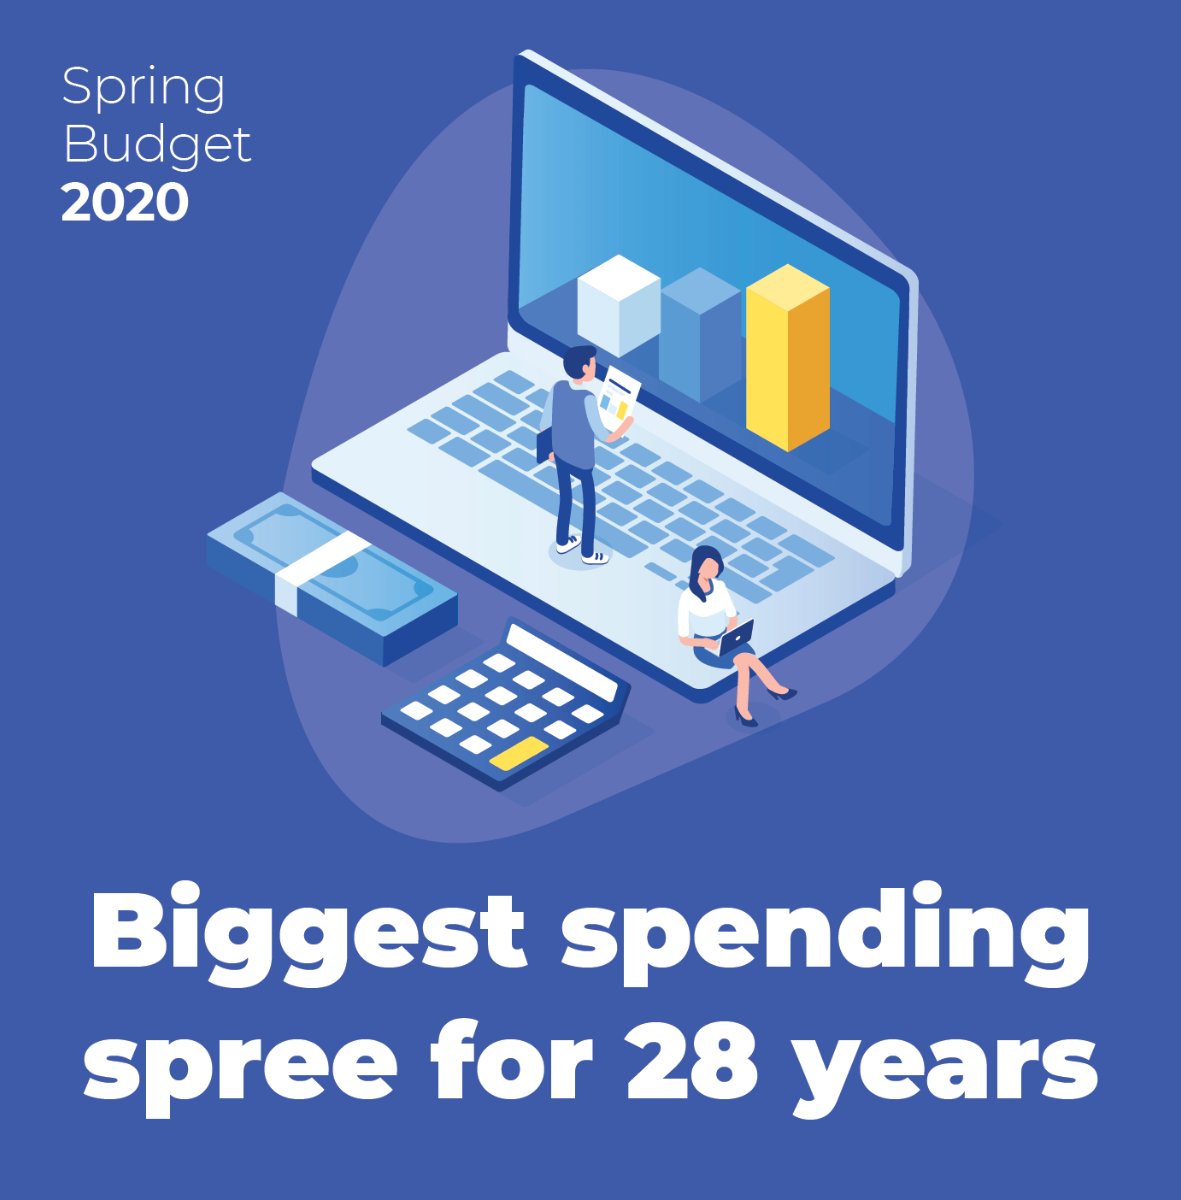 Biggest spending spree for 28 years